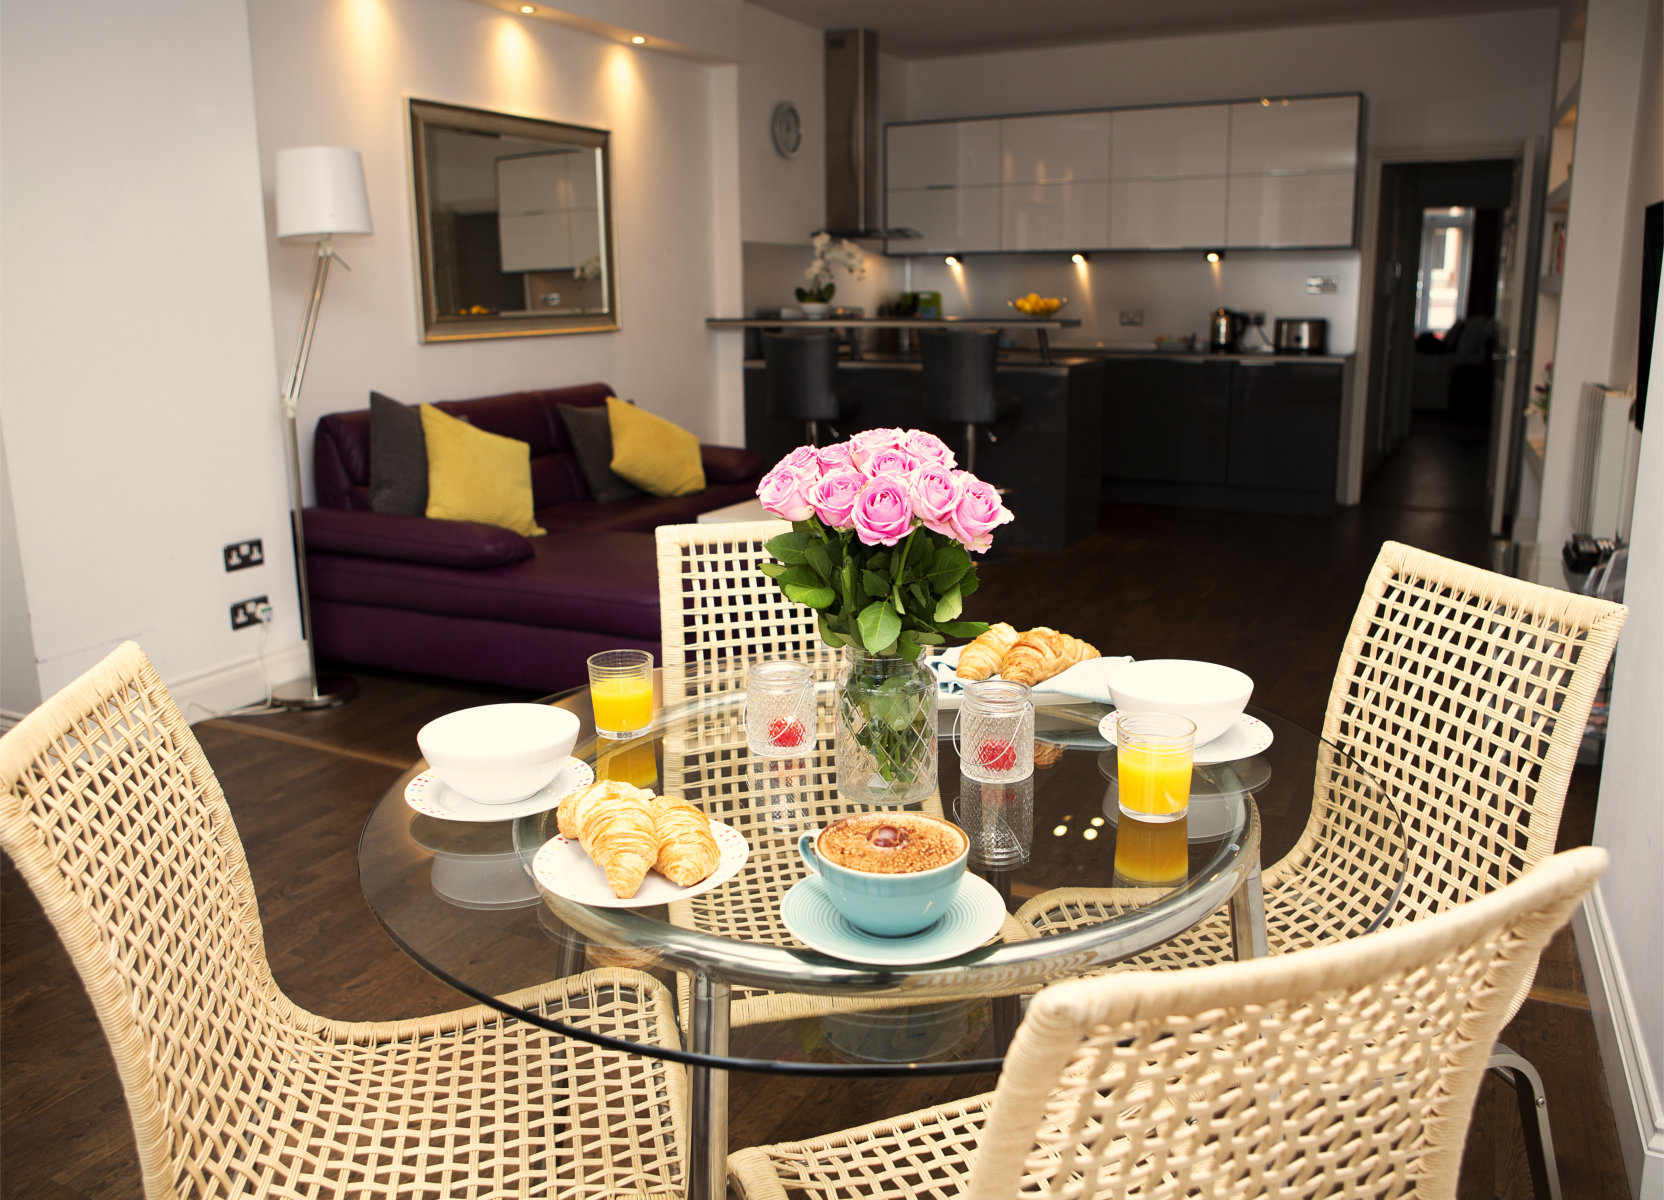 Trafalgar Square Serviced Apartments, Apartment 1, Covent Garden - Kitchen